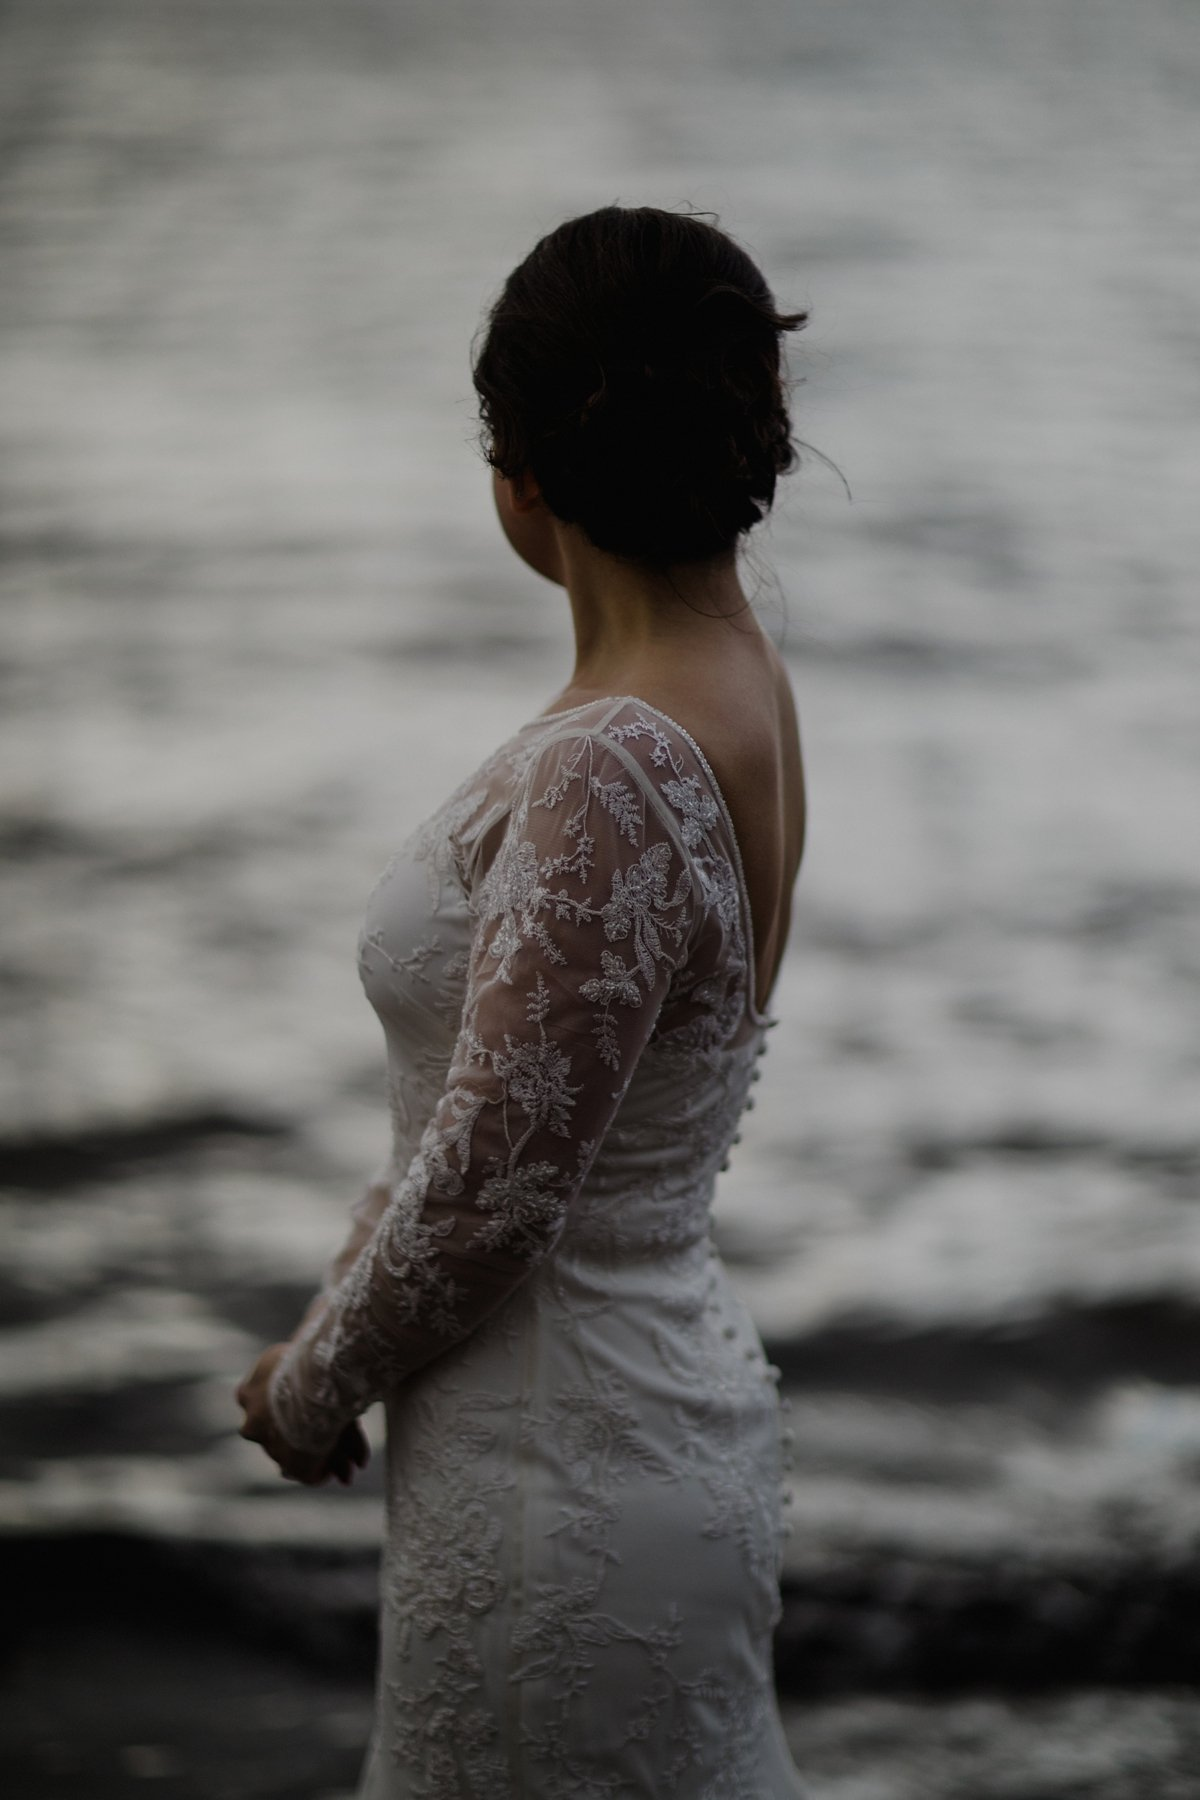 Atmospheric portrait of bride by the water